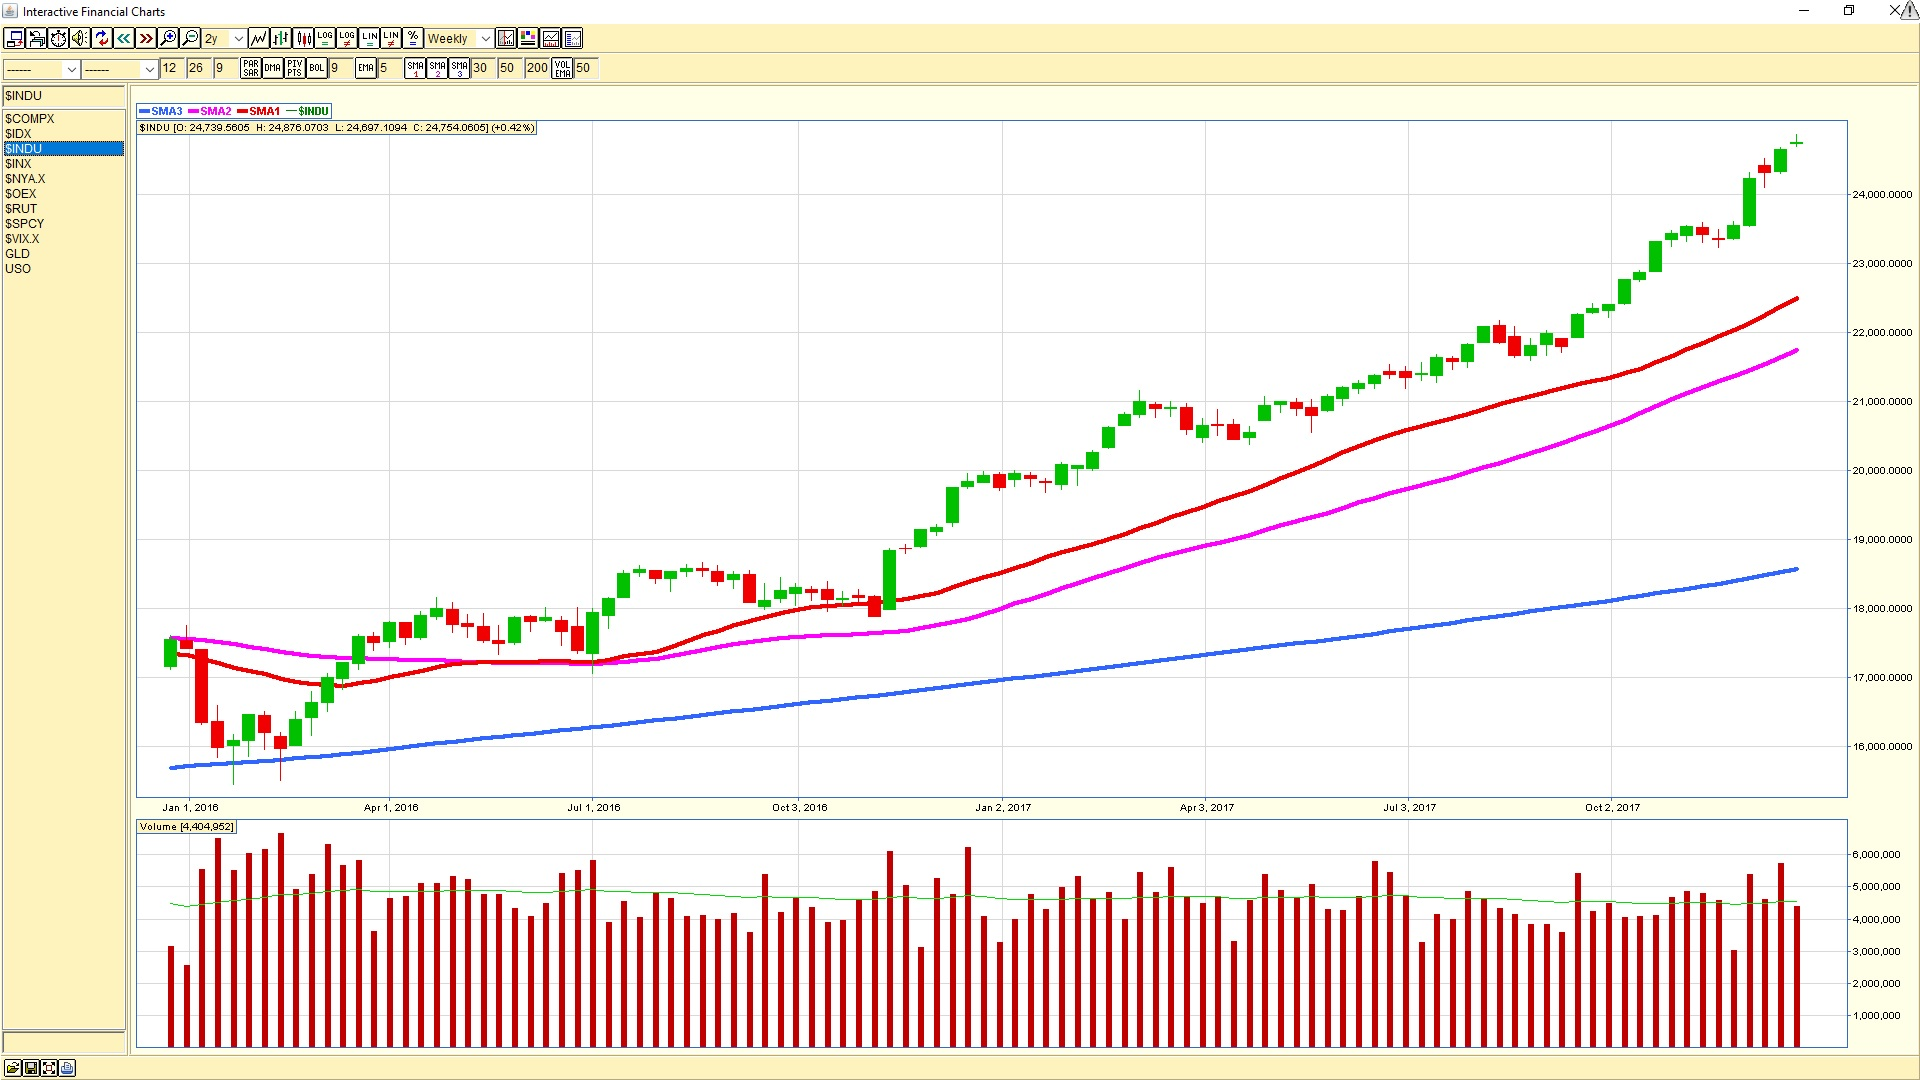 Dow Jones Industrial Average Weekly Chart